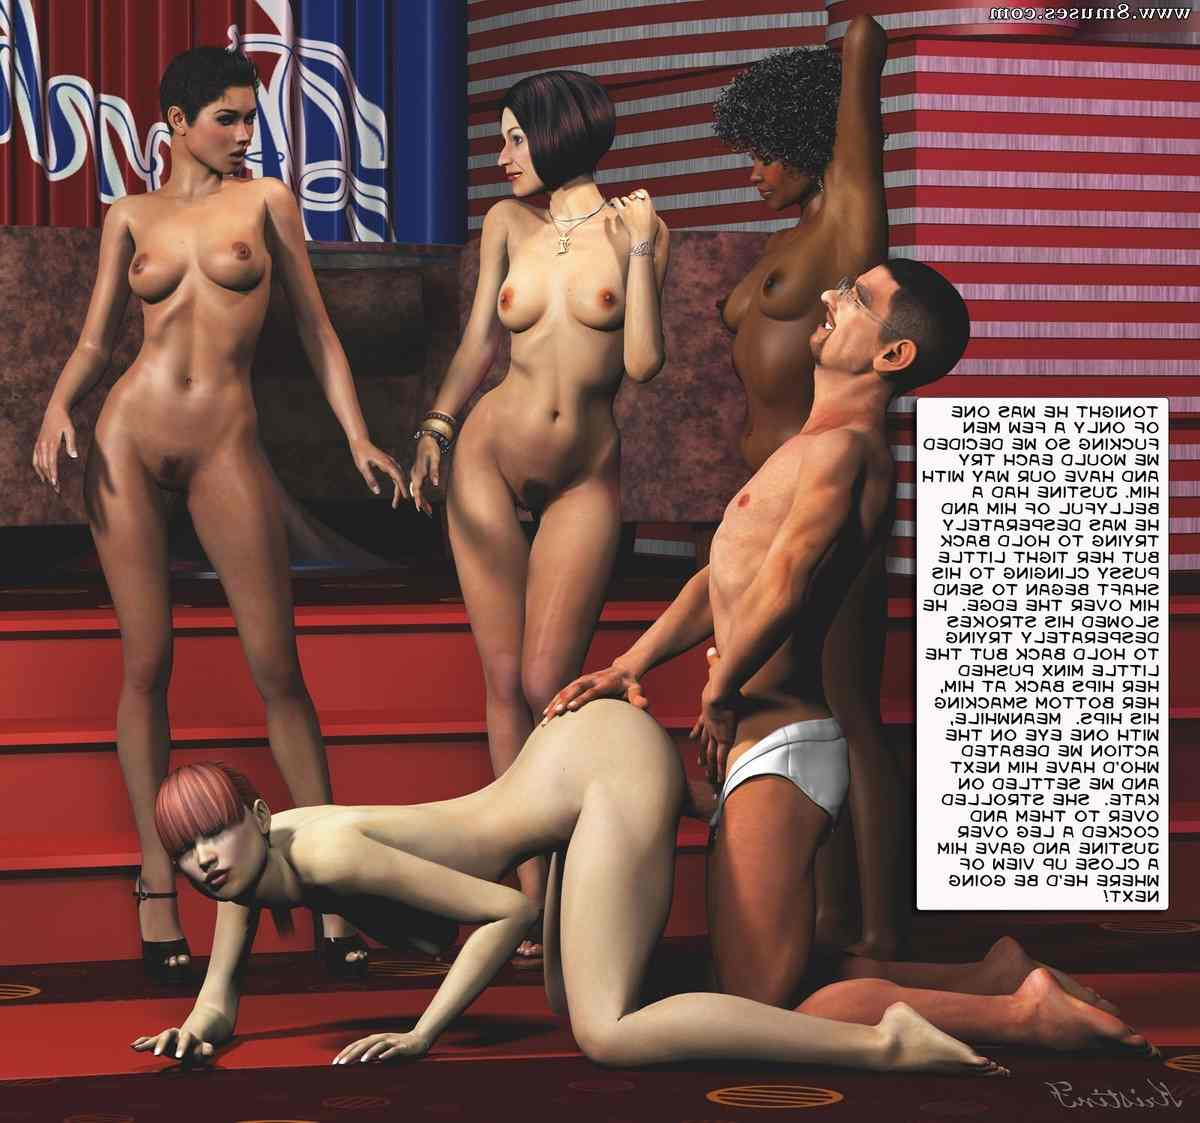 Renderotica-Comics/KristinF/The-Diary-of-a-Party-Girl The_Diary_of_a_Party_Girl__8muses_-_Sex_and_Porn_Comics_11.jpg